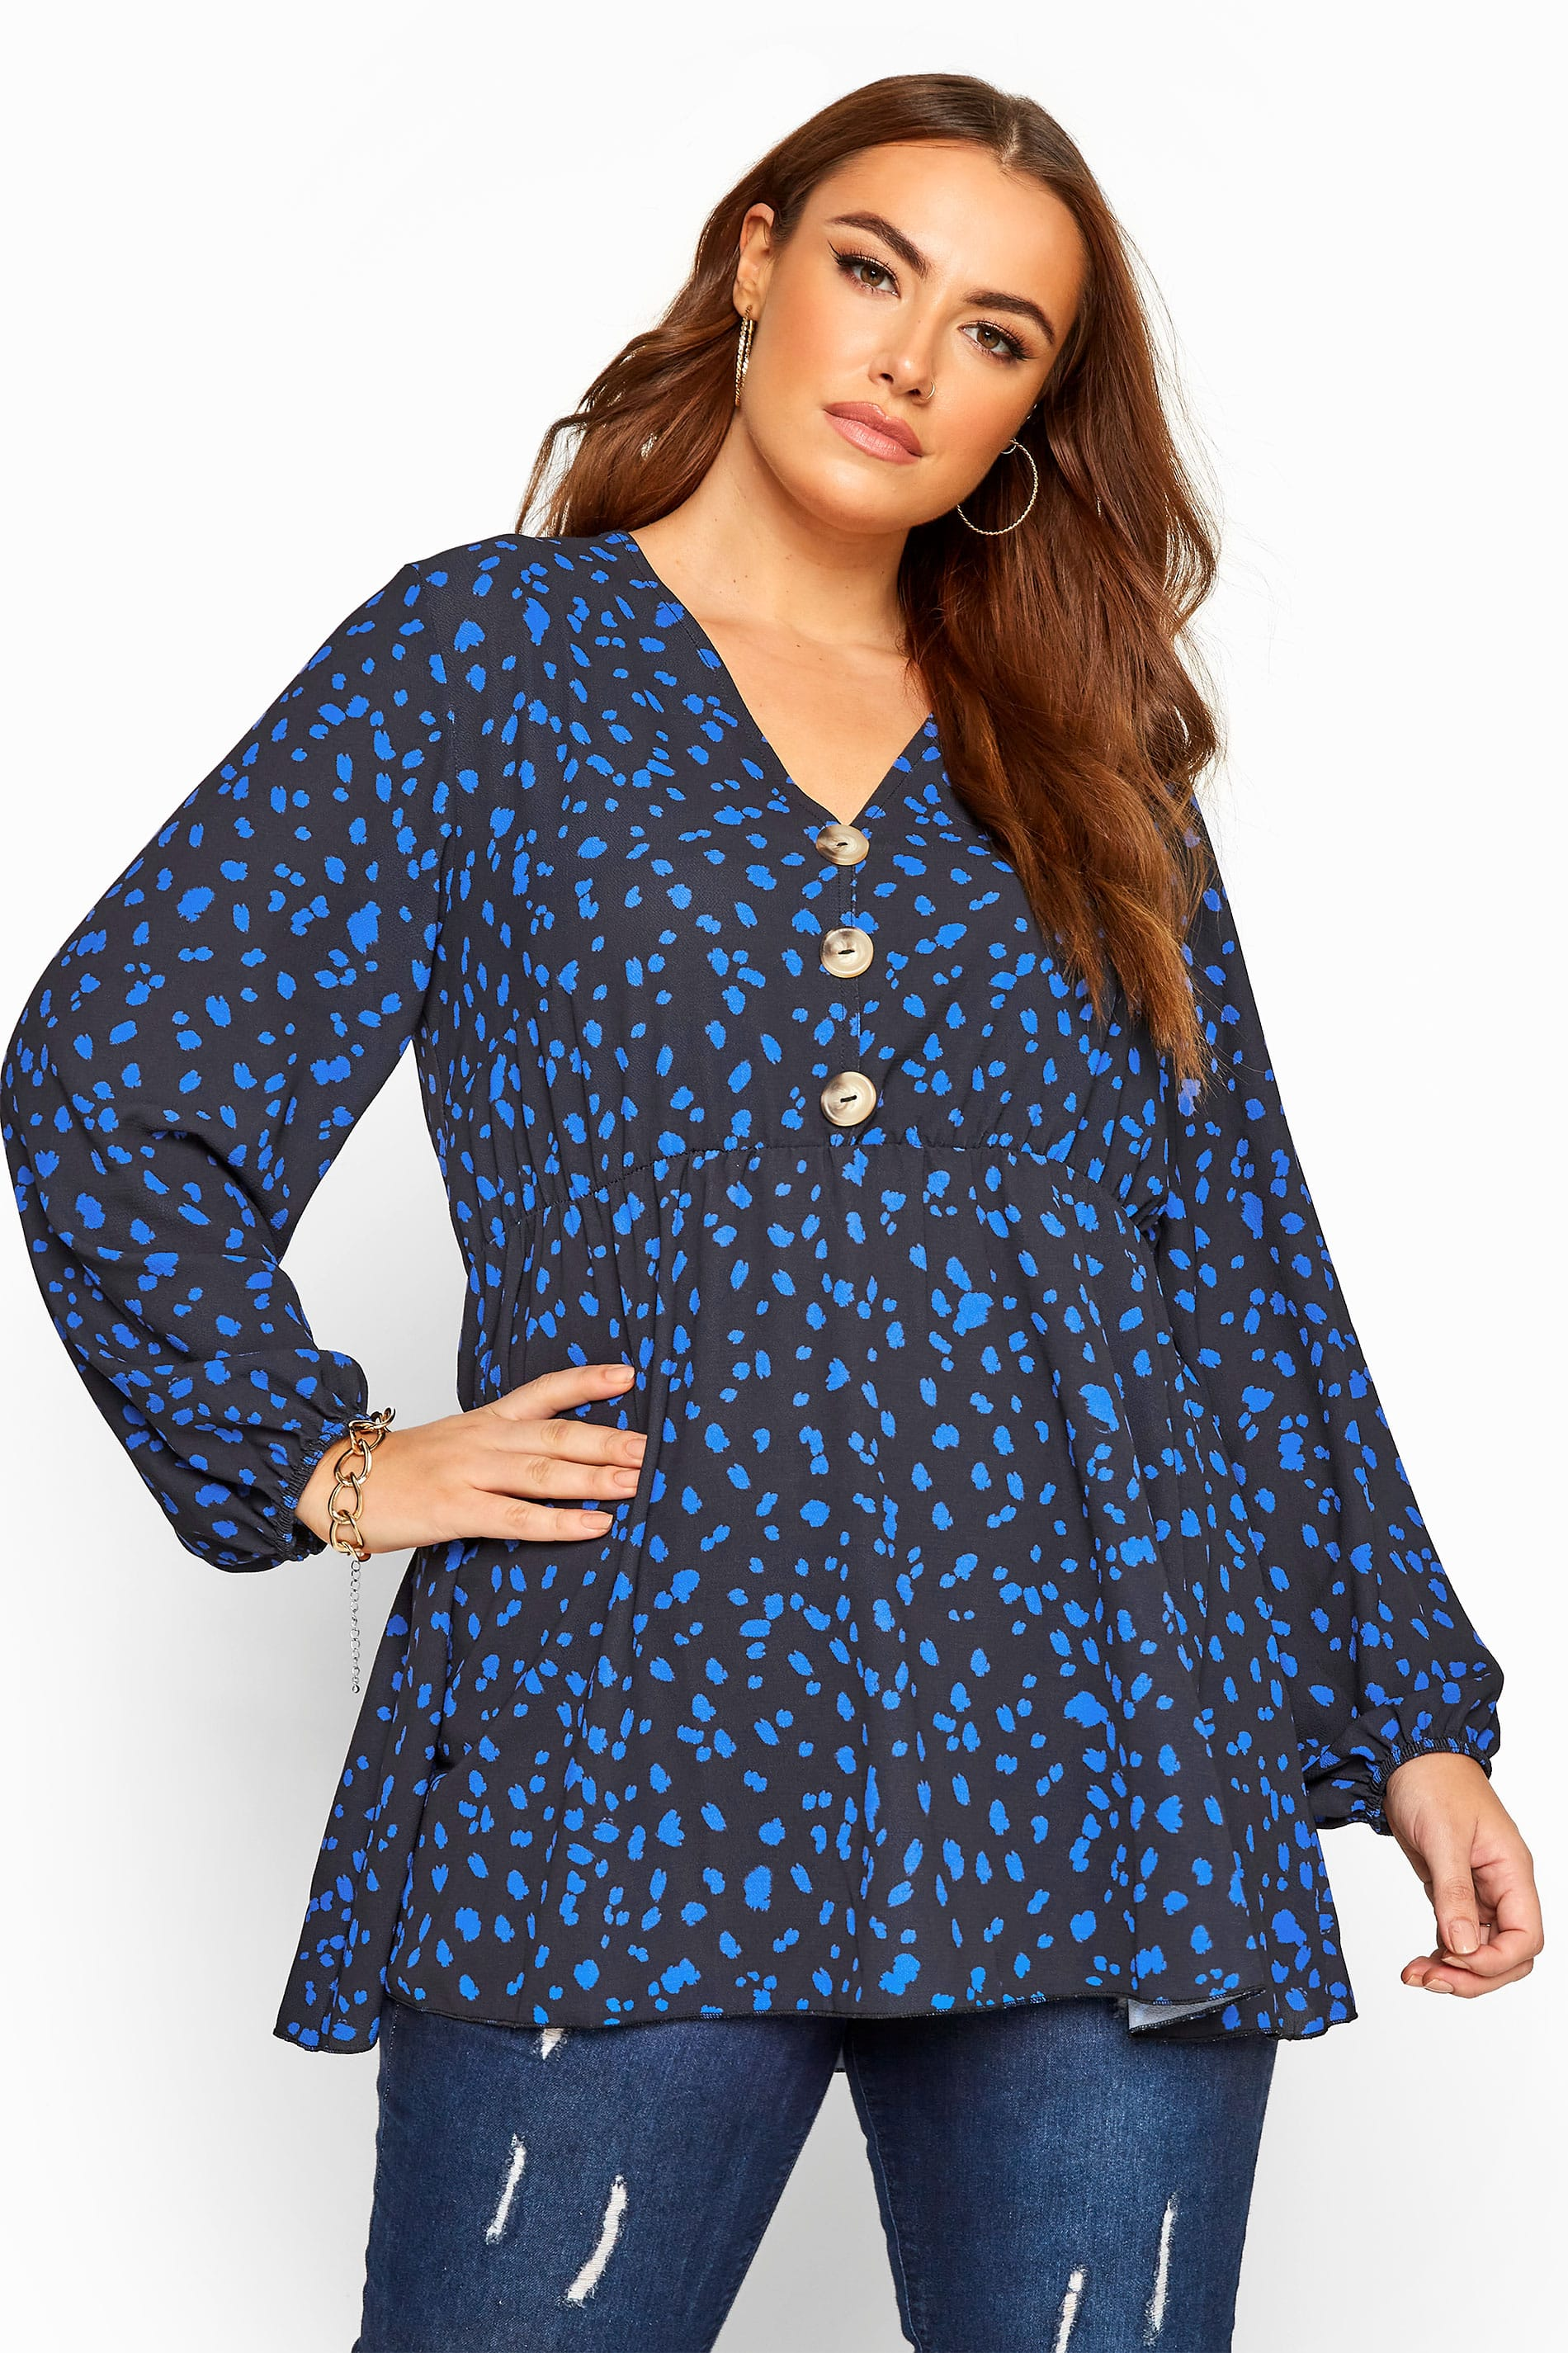 Black & Cobalt Blue Dalmatian Print Button Peplum Top